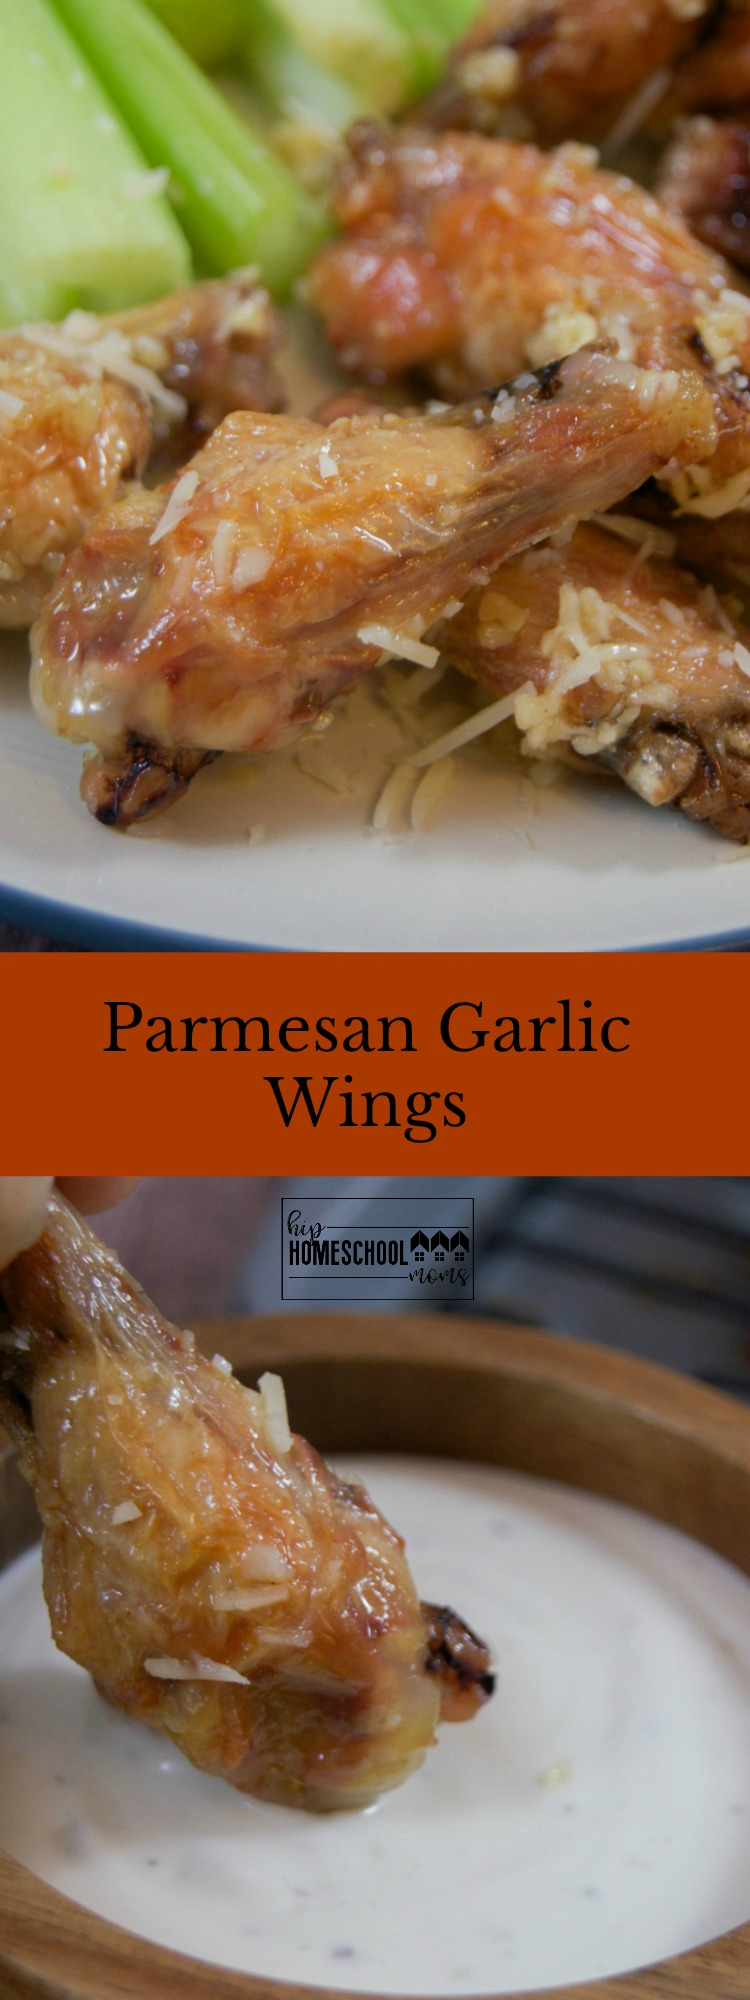 Picture and recipe for Parmesan Garlic Wings |Hip Homeschool Moms